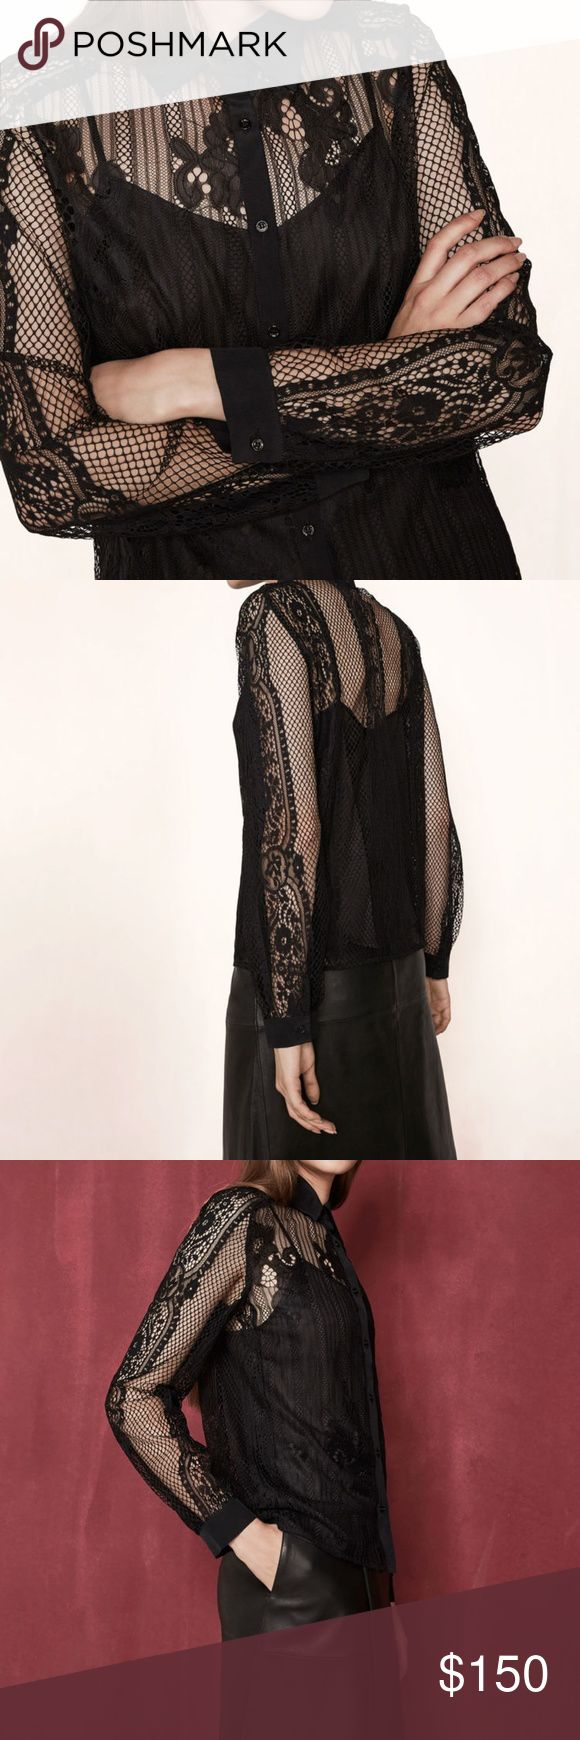 """NWT Maje black lace long sleeve lace top blouse 2 Maje size 2. (equivalent to about a size S).  Fits bust around 32-35'"""". No trades.  It doesn't include the black camisole underneath but could be worn with a black bra, nude bra, camisole, many options work with this top. Maje Tops Blouses"""